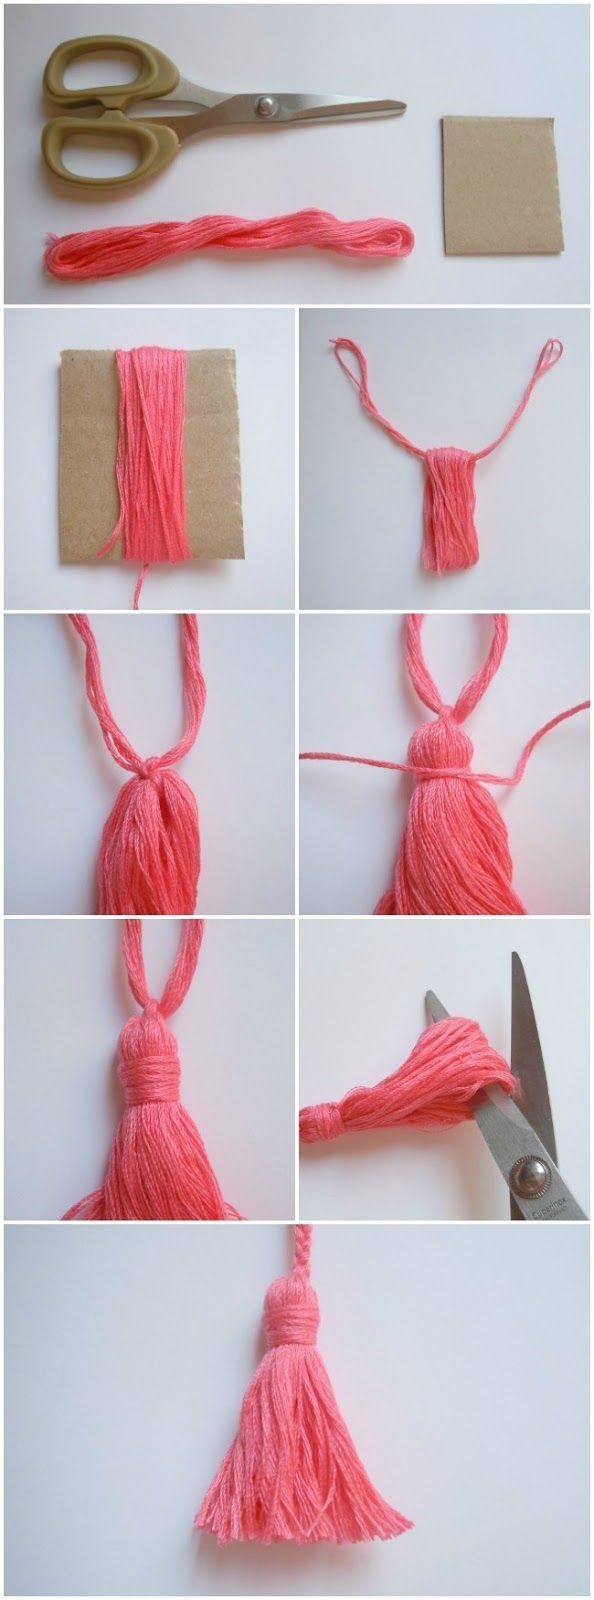 HOW TO MAKE TASSELS for t shirt skirt?